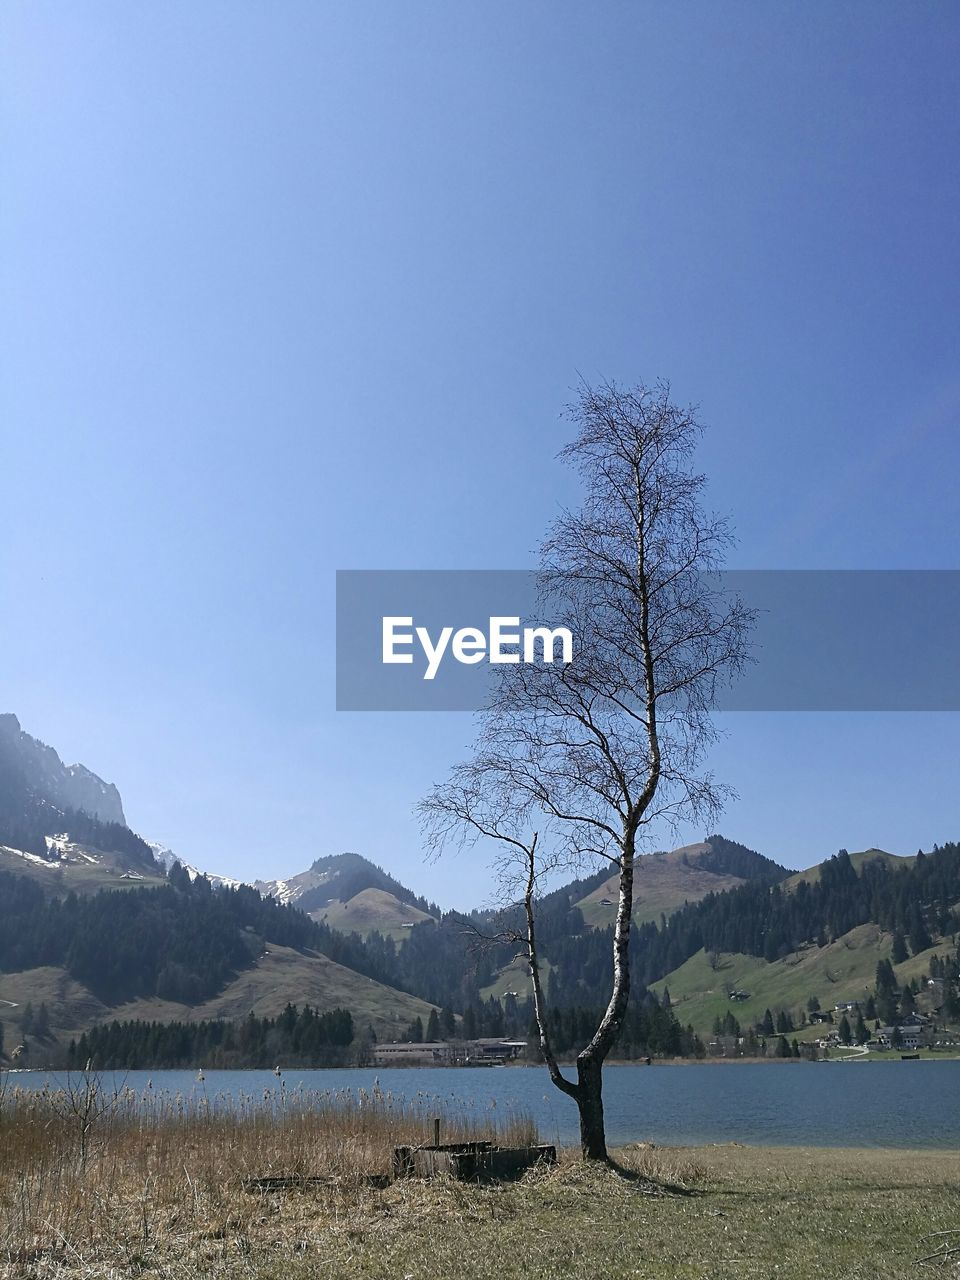 tranquility, tranquil scene, nature, mountain, beauty in nature, lake, scenics, landscape, tree, no people, water, outdoors, clear sky, day, bare tree, mountain range, blue, branch, sky